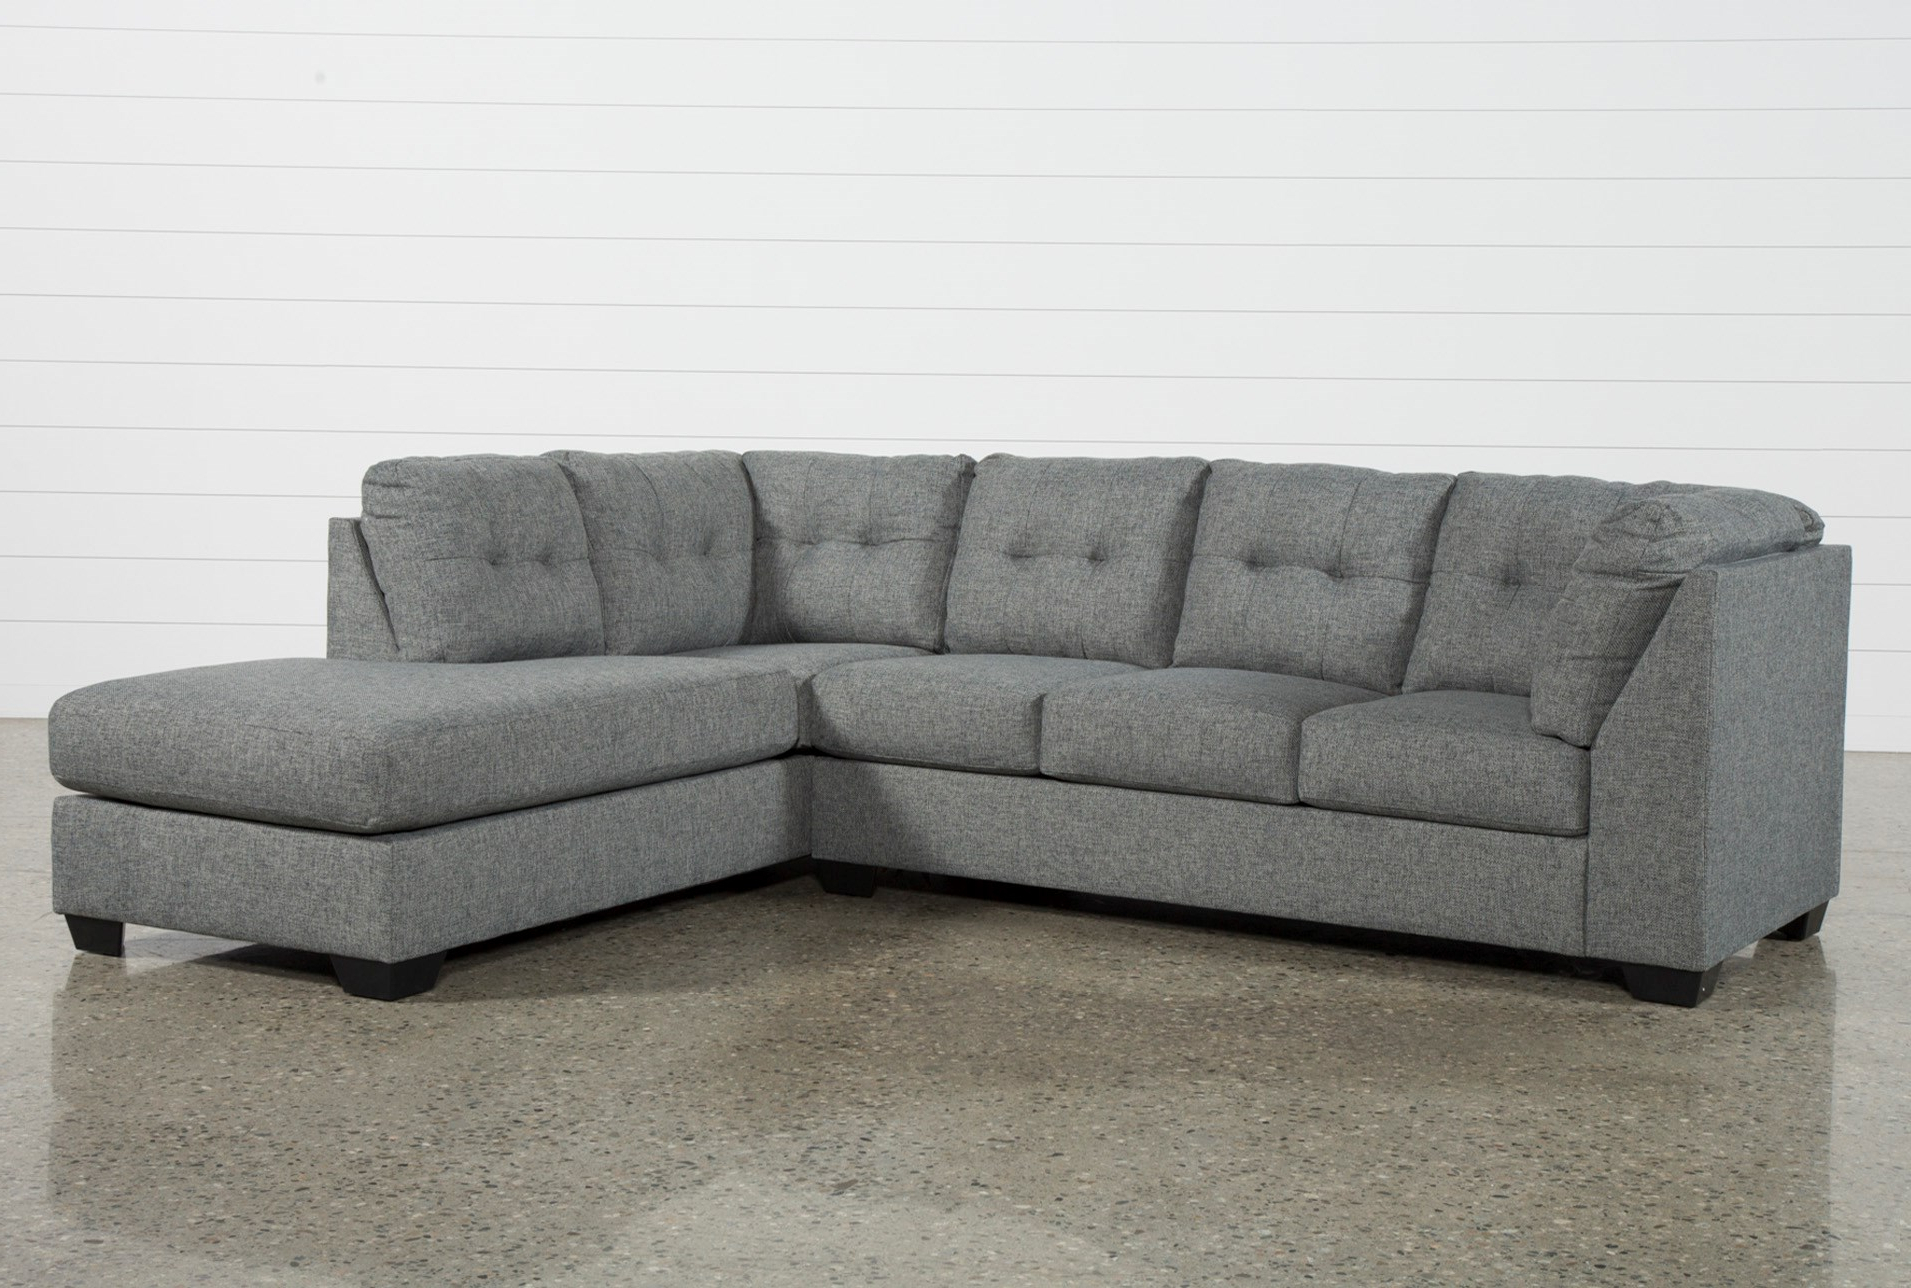 Lucy Dark Grey 2 Piece Sleeper Sectionals With Laf Chaise With Fashionable Sleeper Sectional With Chaise – Tidex (View 10 of 20)